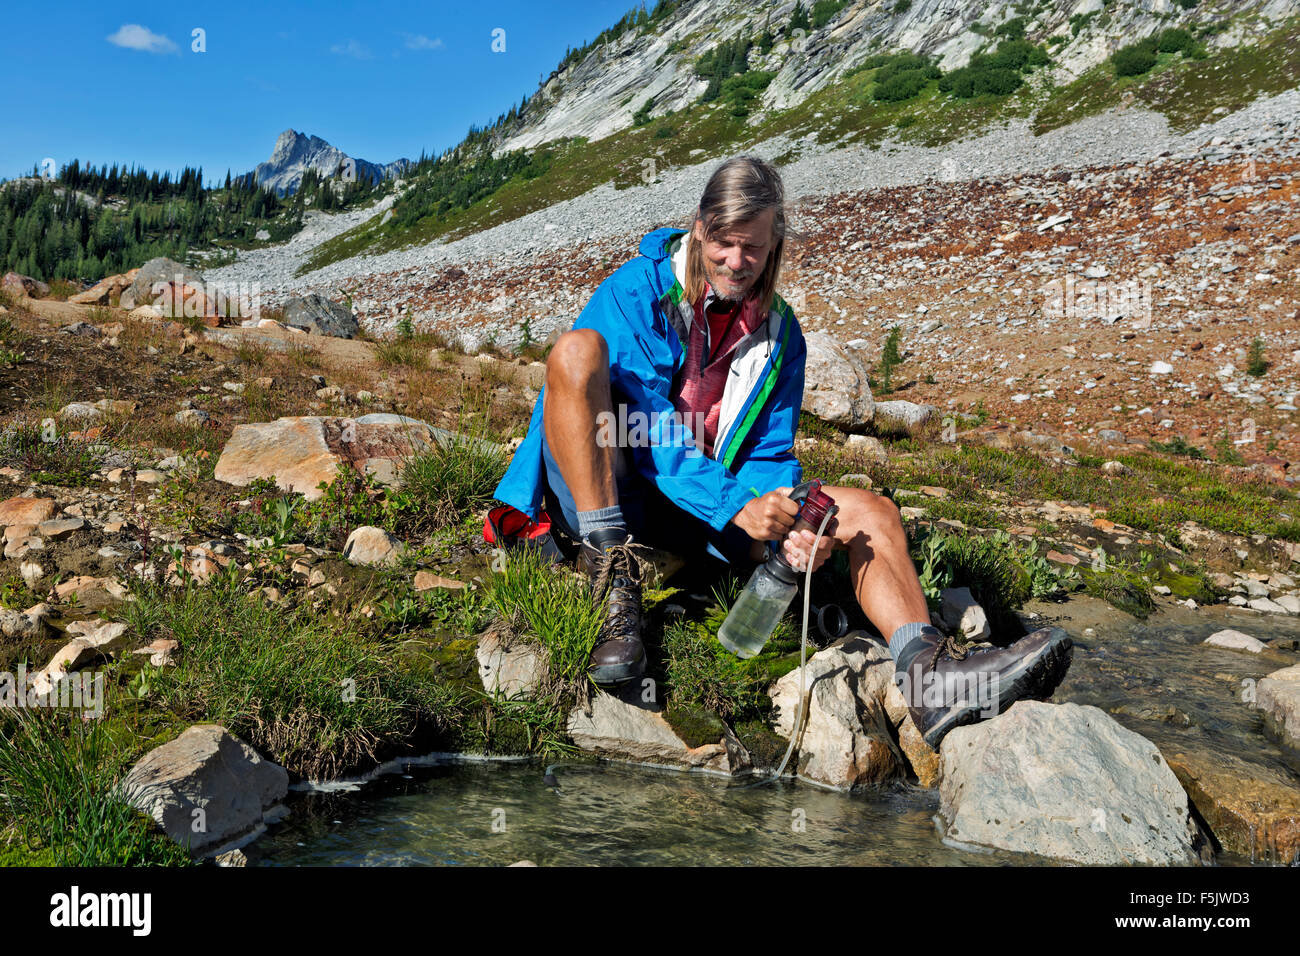 WASHINGTON - Pumping water for drinking from Upper Lyman Lake in the Glacier Peak Wilderness area of the Cascade - Stock Image